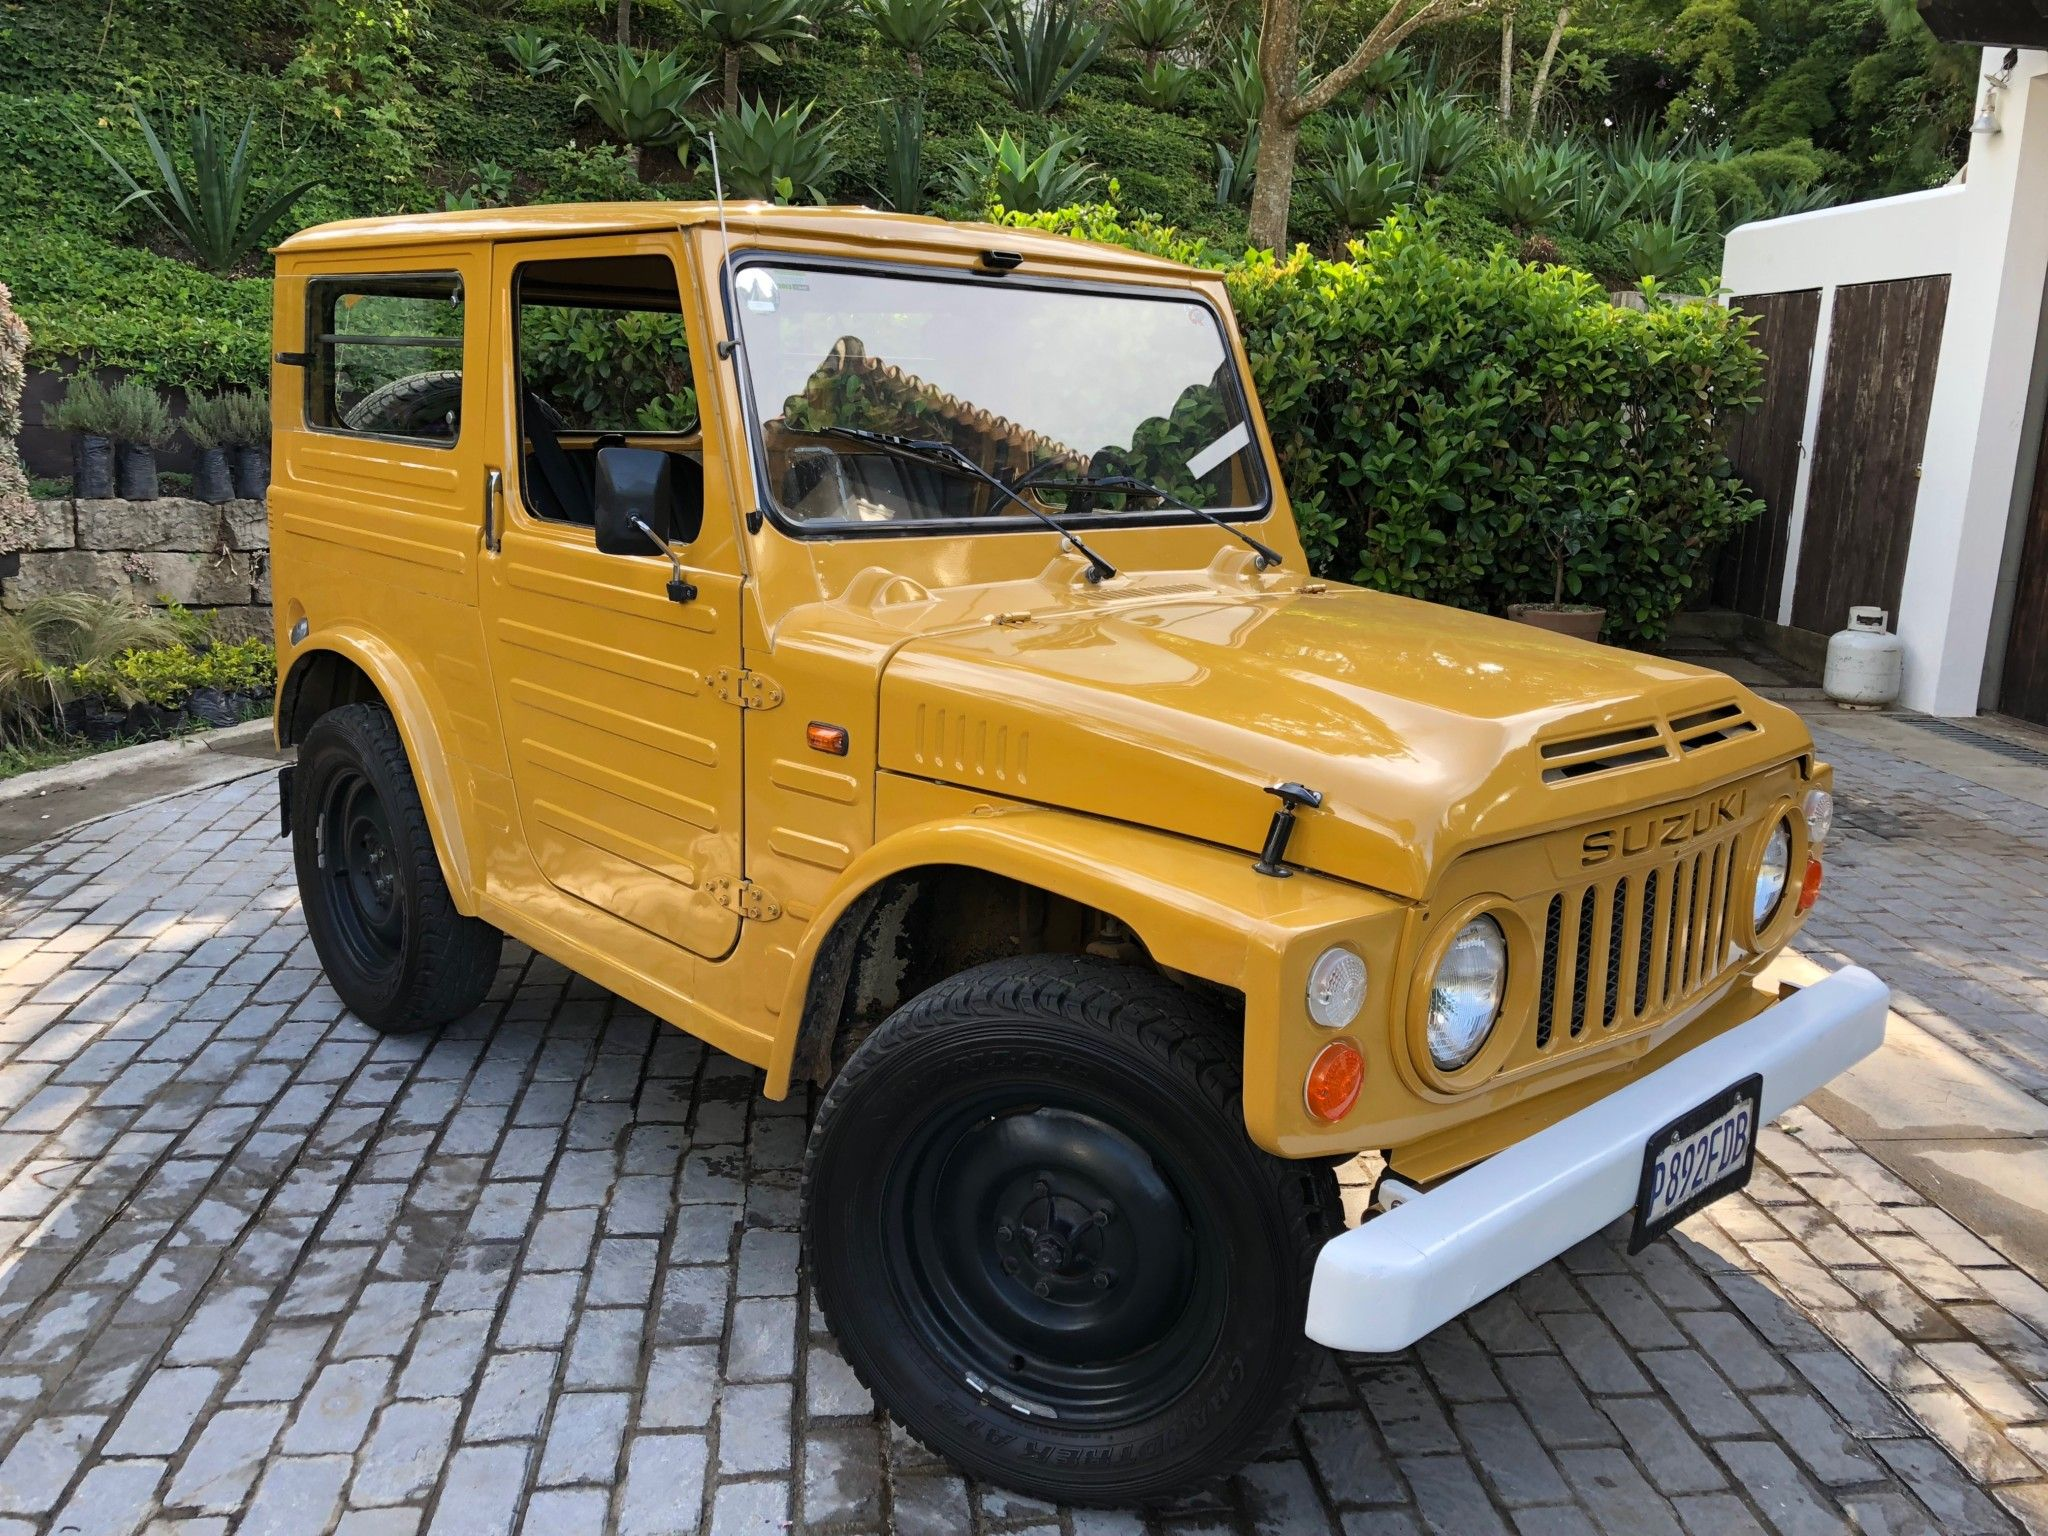 Bid For The Chance To Own A 1980 Suzuki Lj80 At Auction With Bring A Trailer The Home Of The Best Vintage And Suzuki Cars Dream Cars Range Rovers Suzuki Jimny